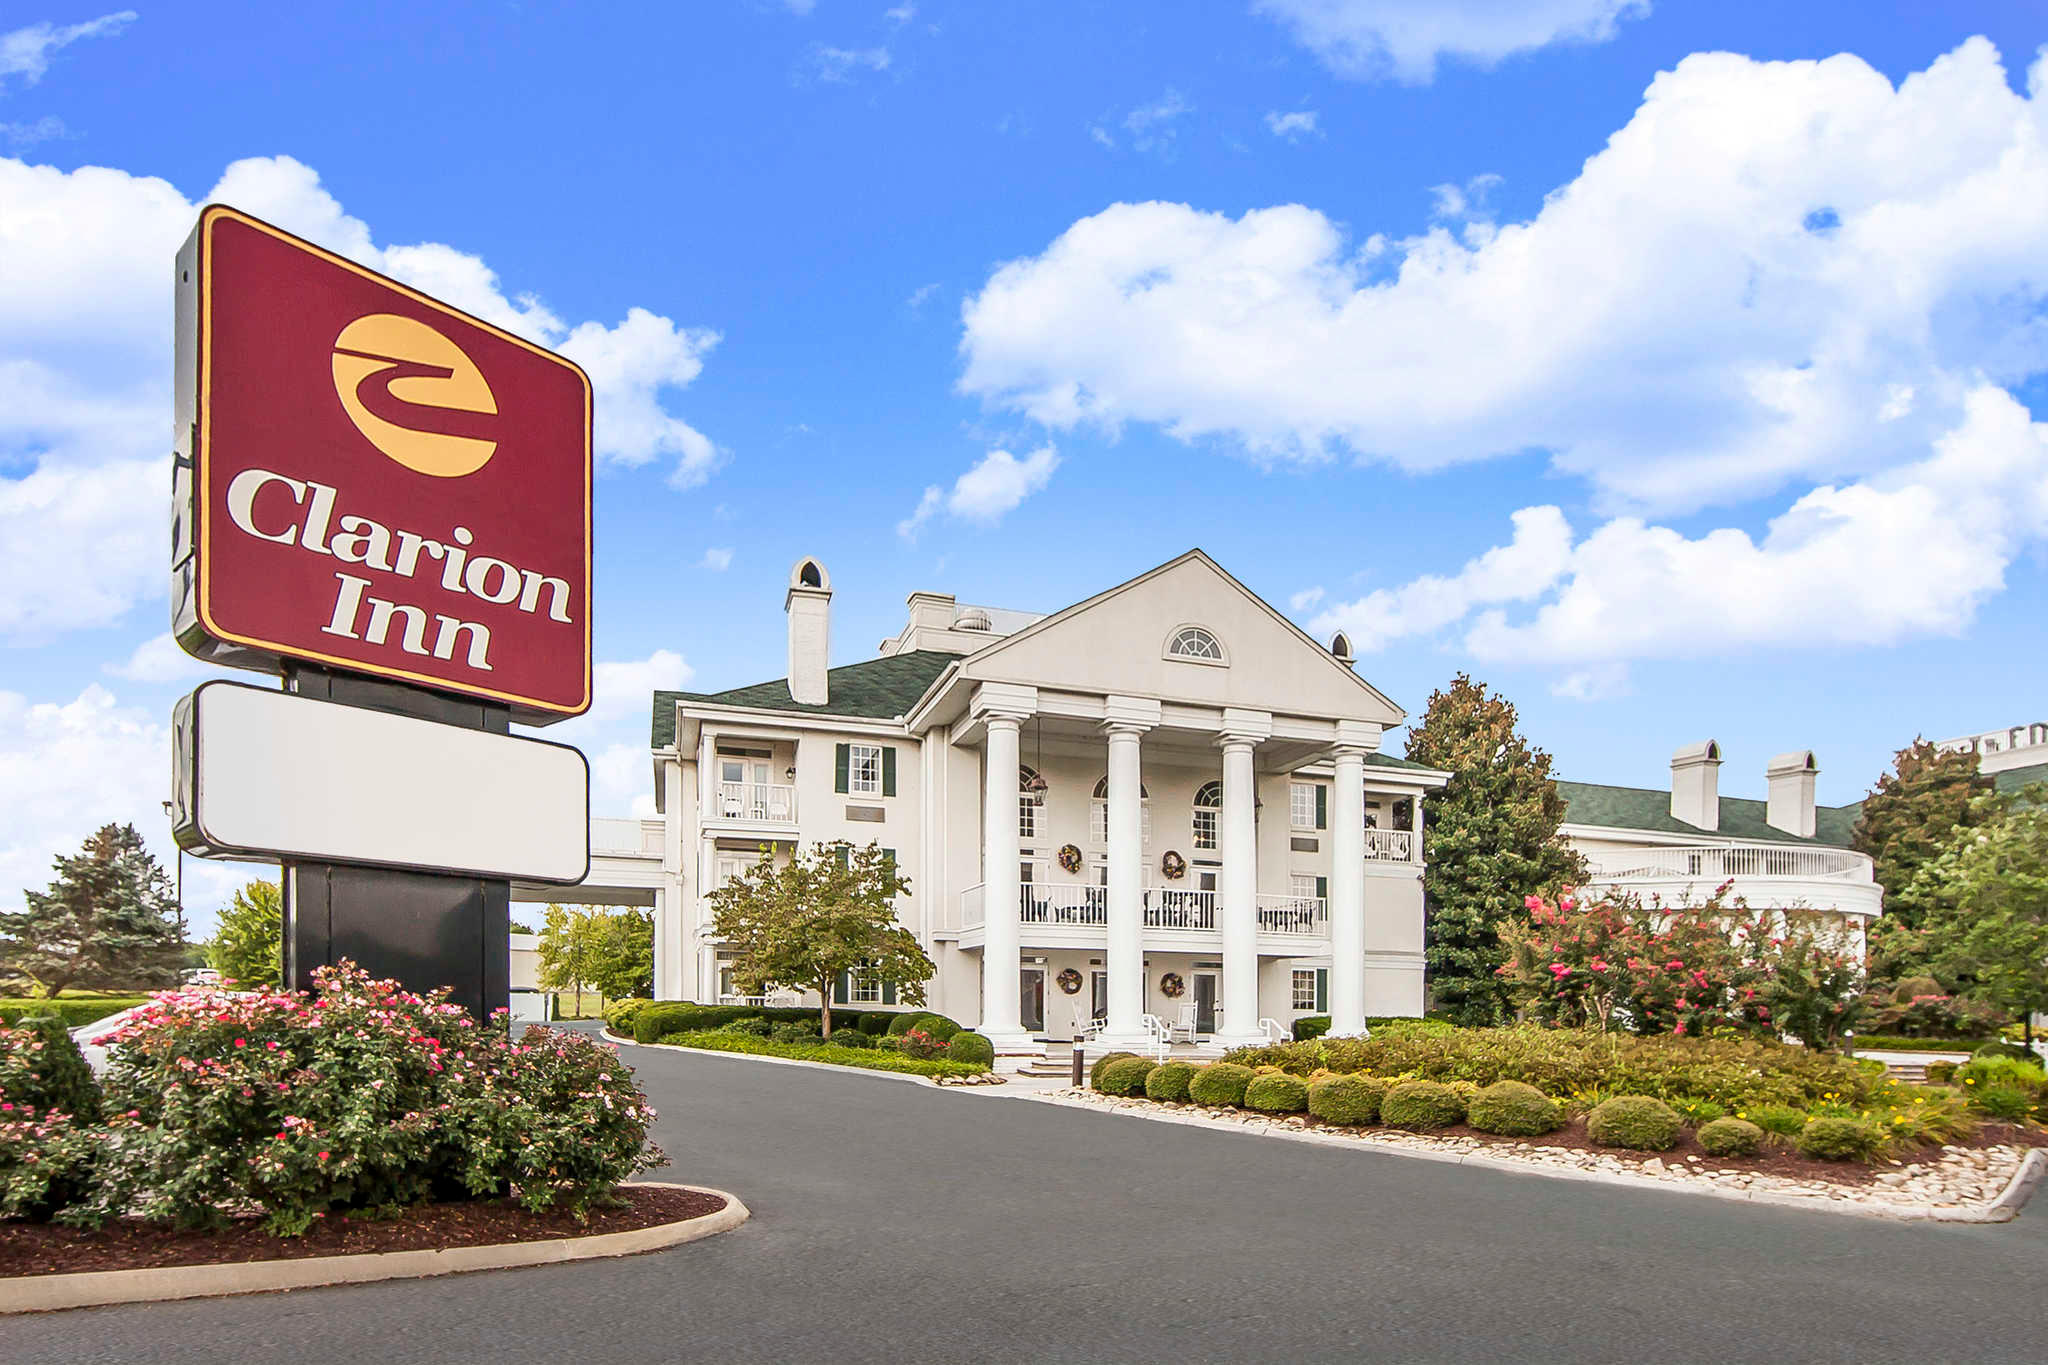 Clarion Inn Willow River In Sevierville  Tn